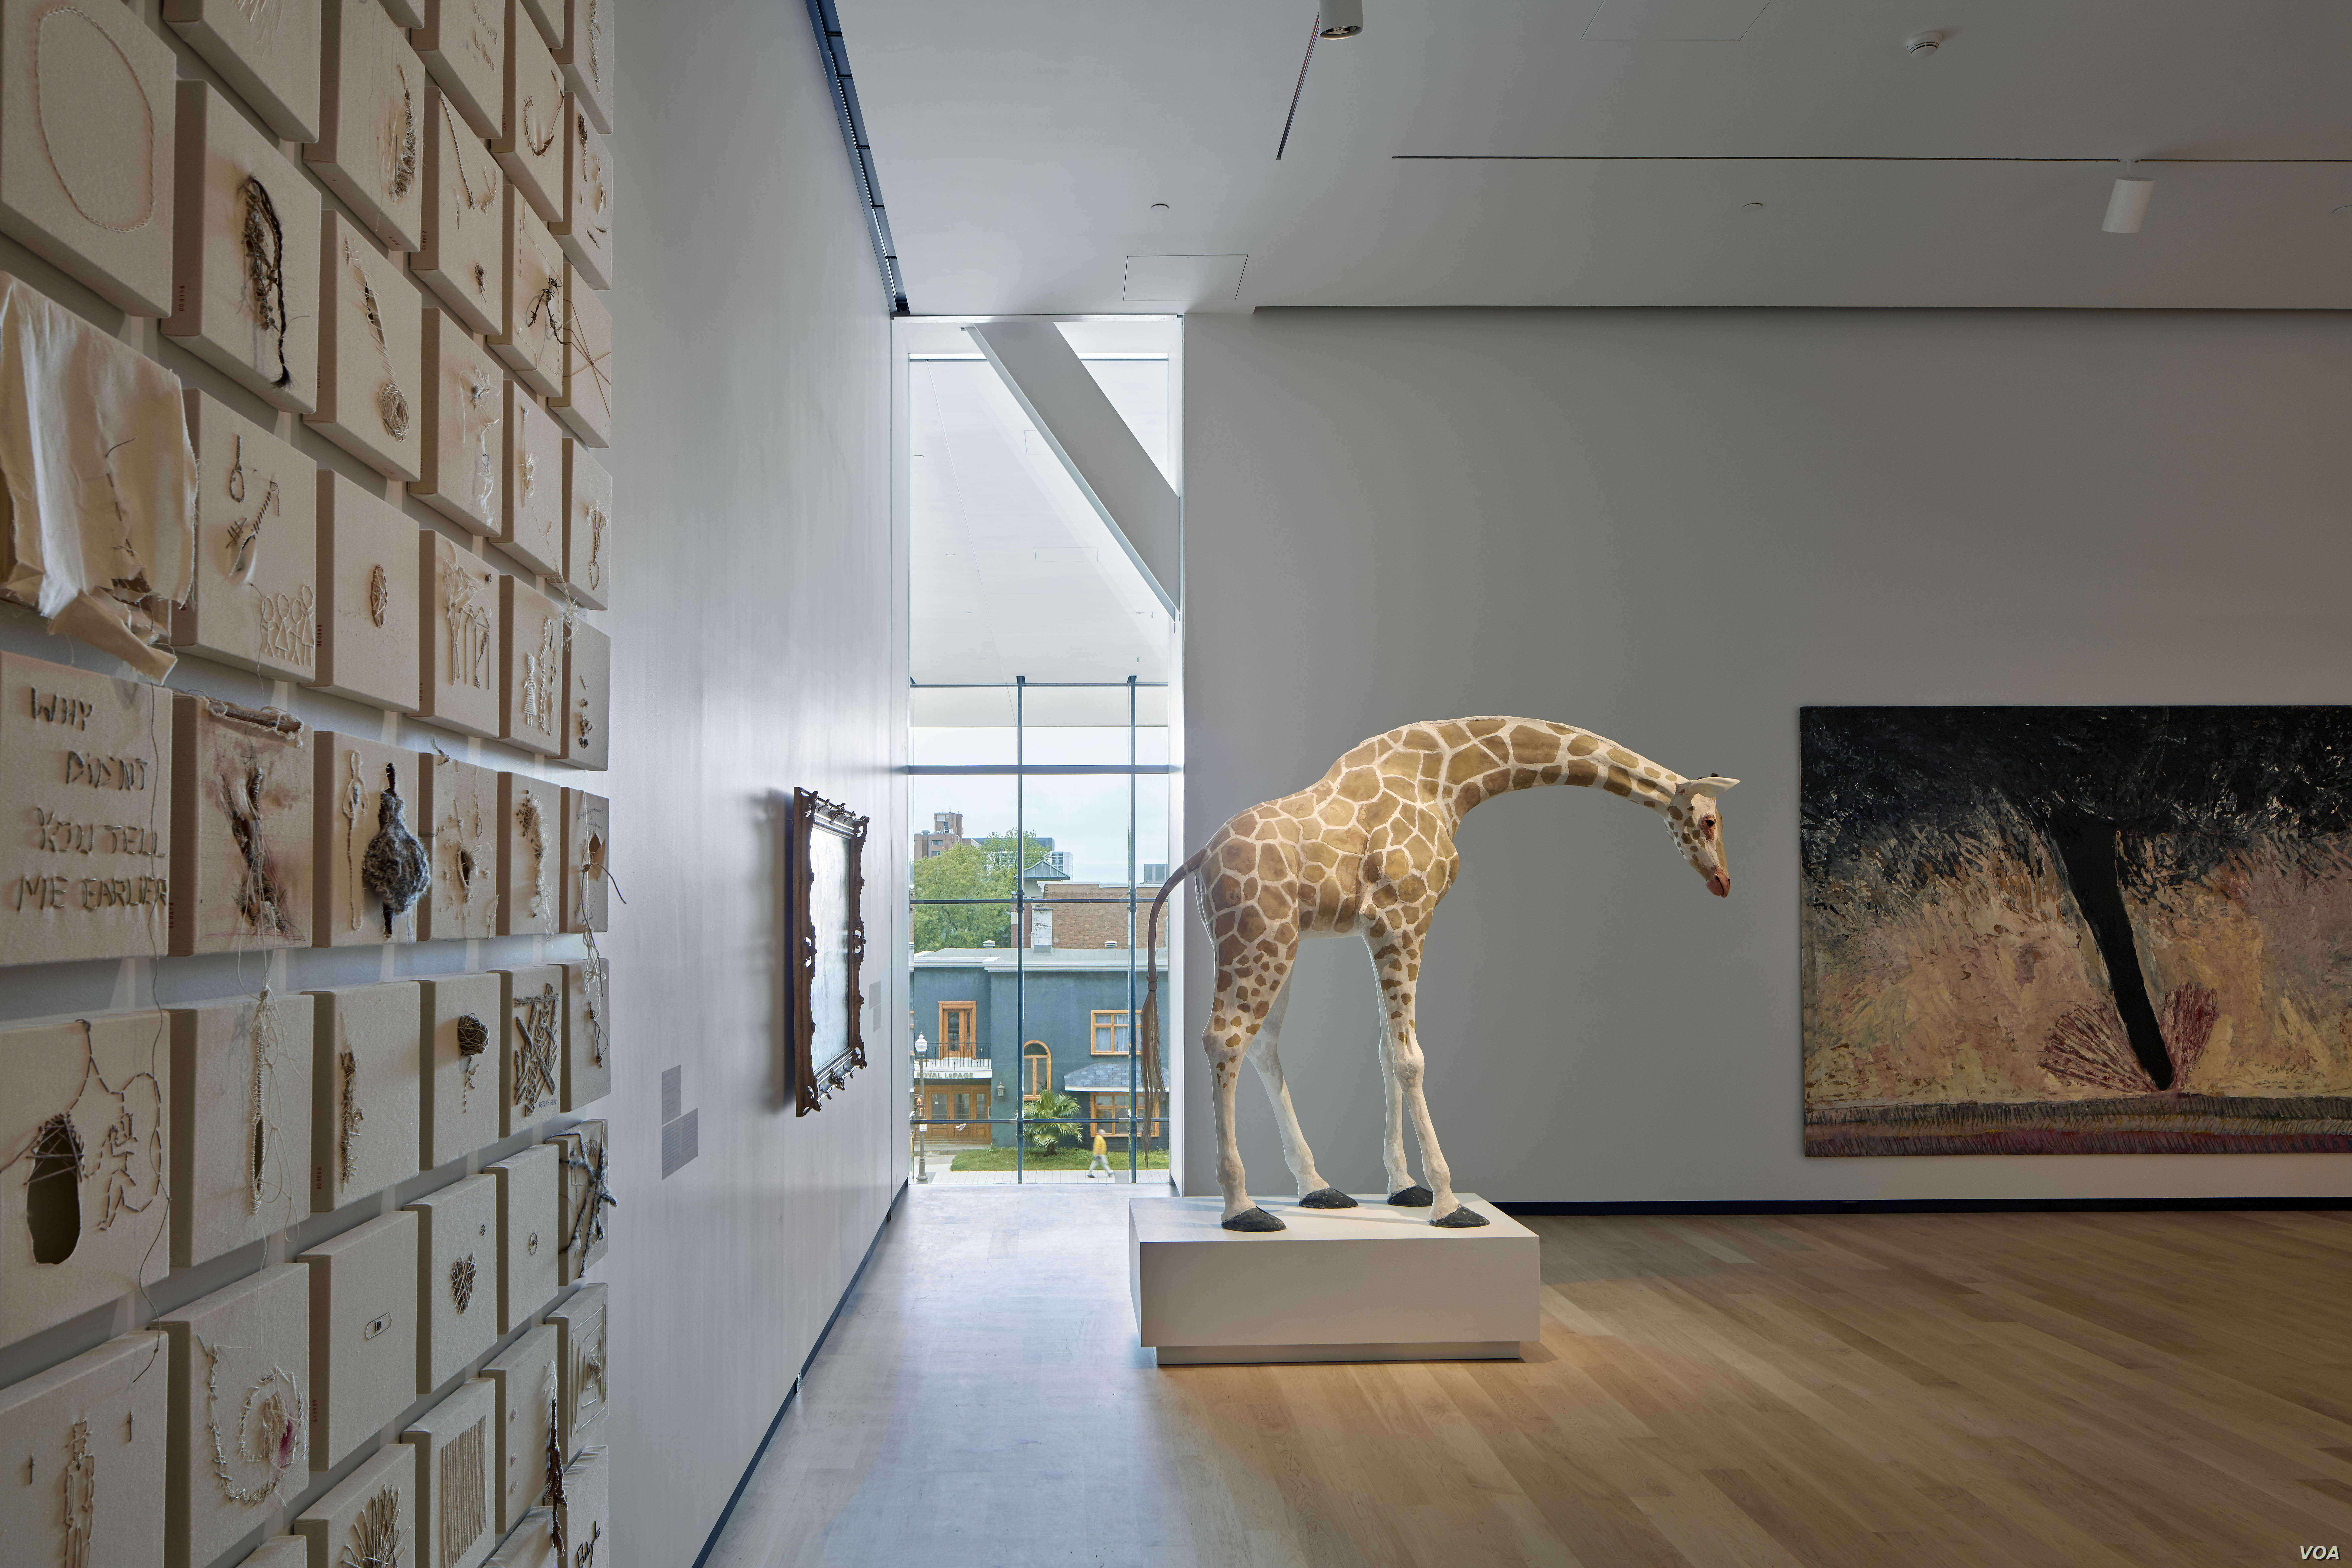 Part of Nadia Myre's The Scar can be seen on the far left. In the center is Trevor Gould's Nubian Giraffe. Through the window, visitors can look out onto Quebec's Grand Allee and the city beyond.